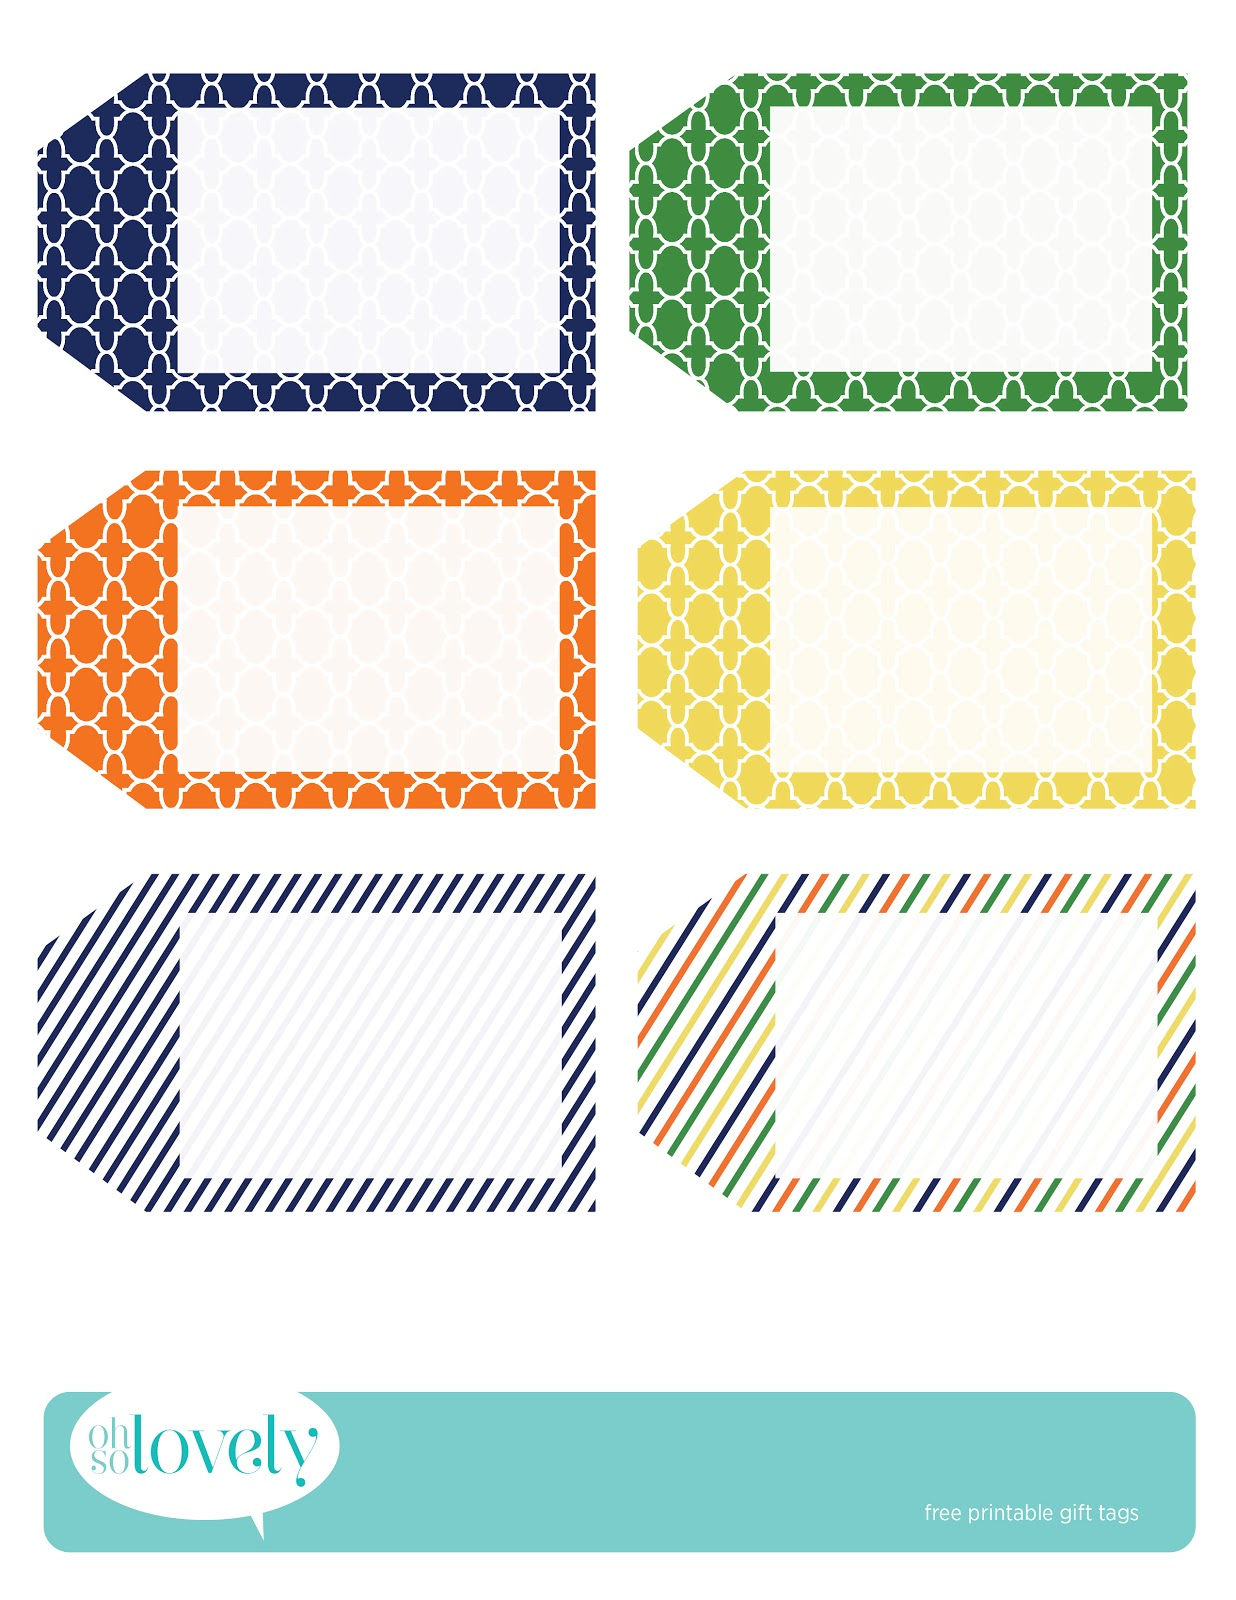 birthday gift labels template ; oh-so-lovely-free-gift-tags2-01